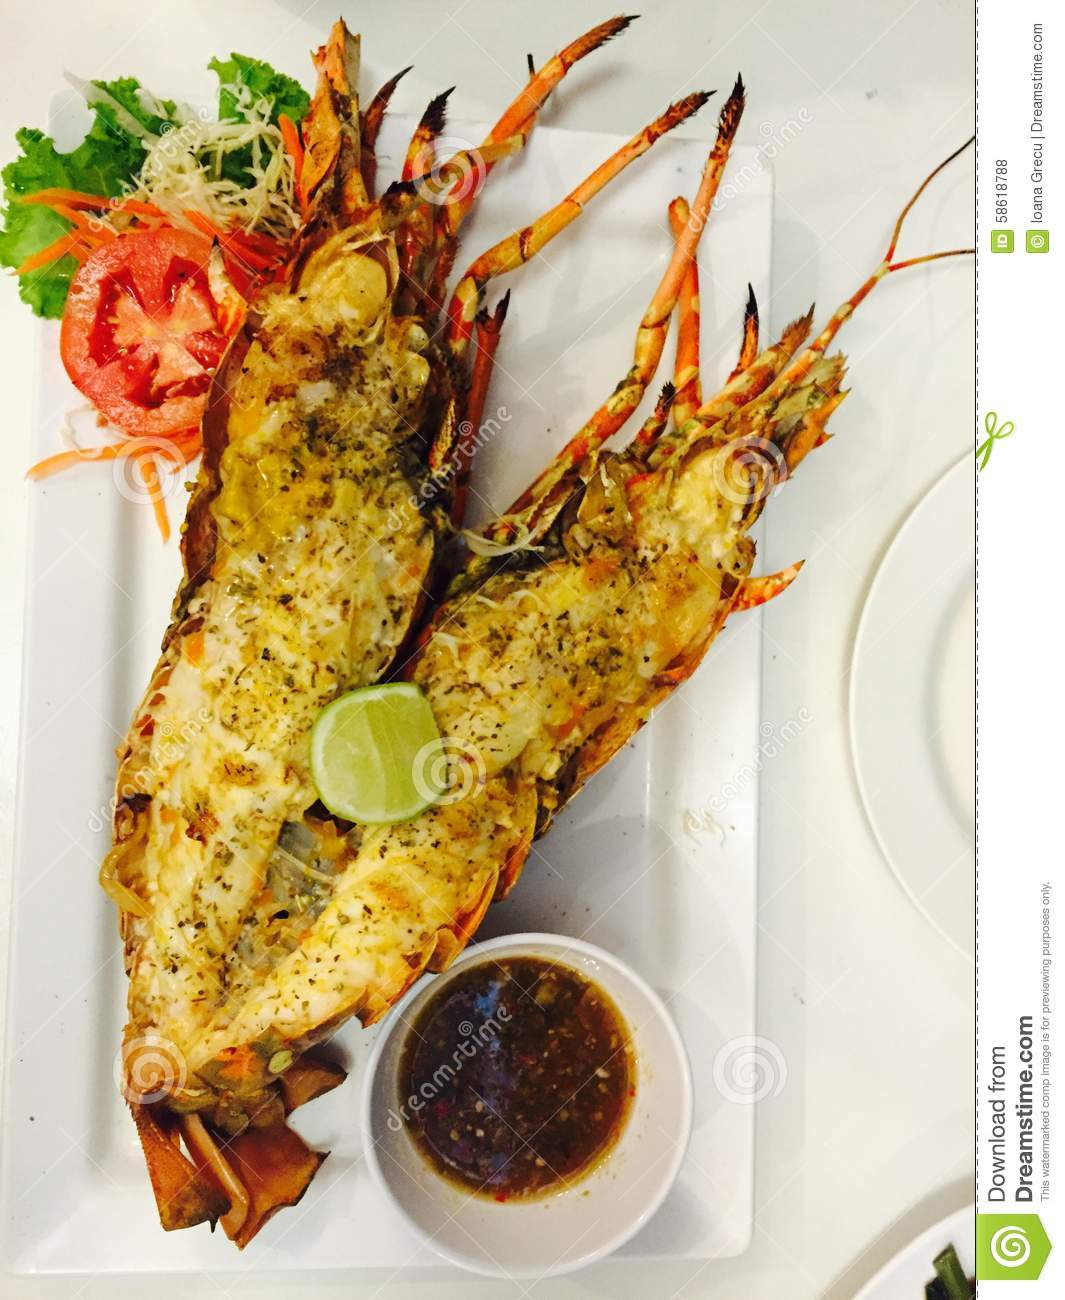 Barbeque lobster with lemon, garlic and butter sauce.